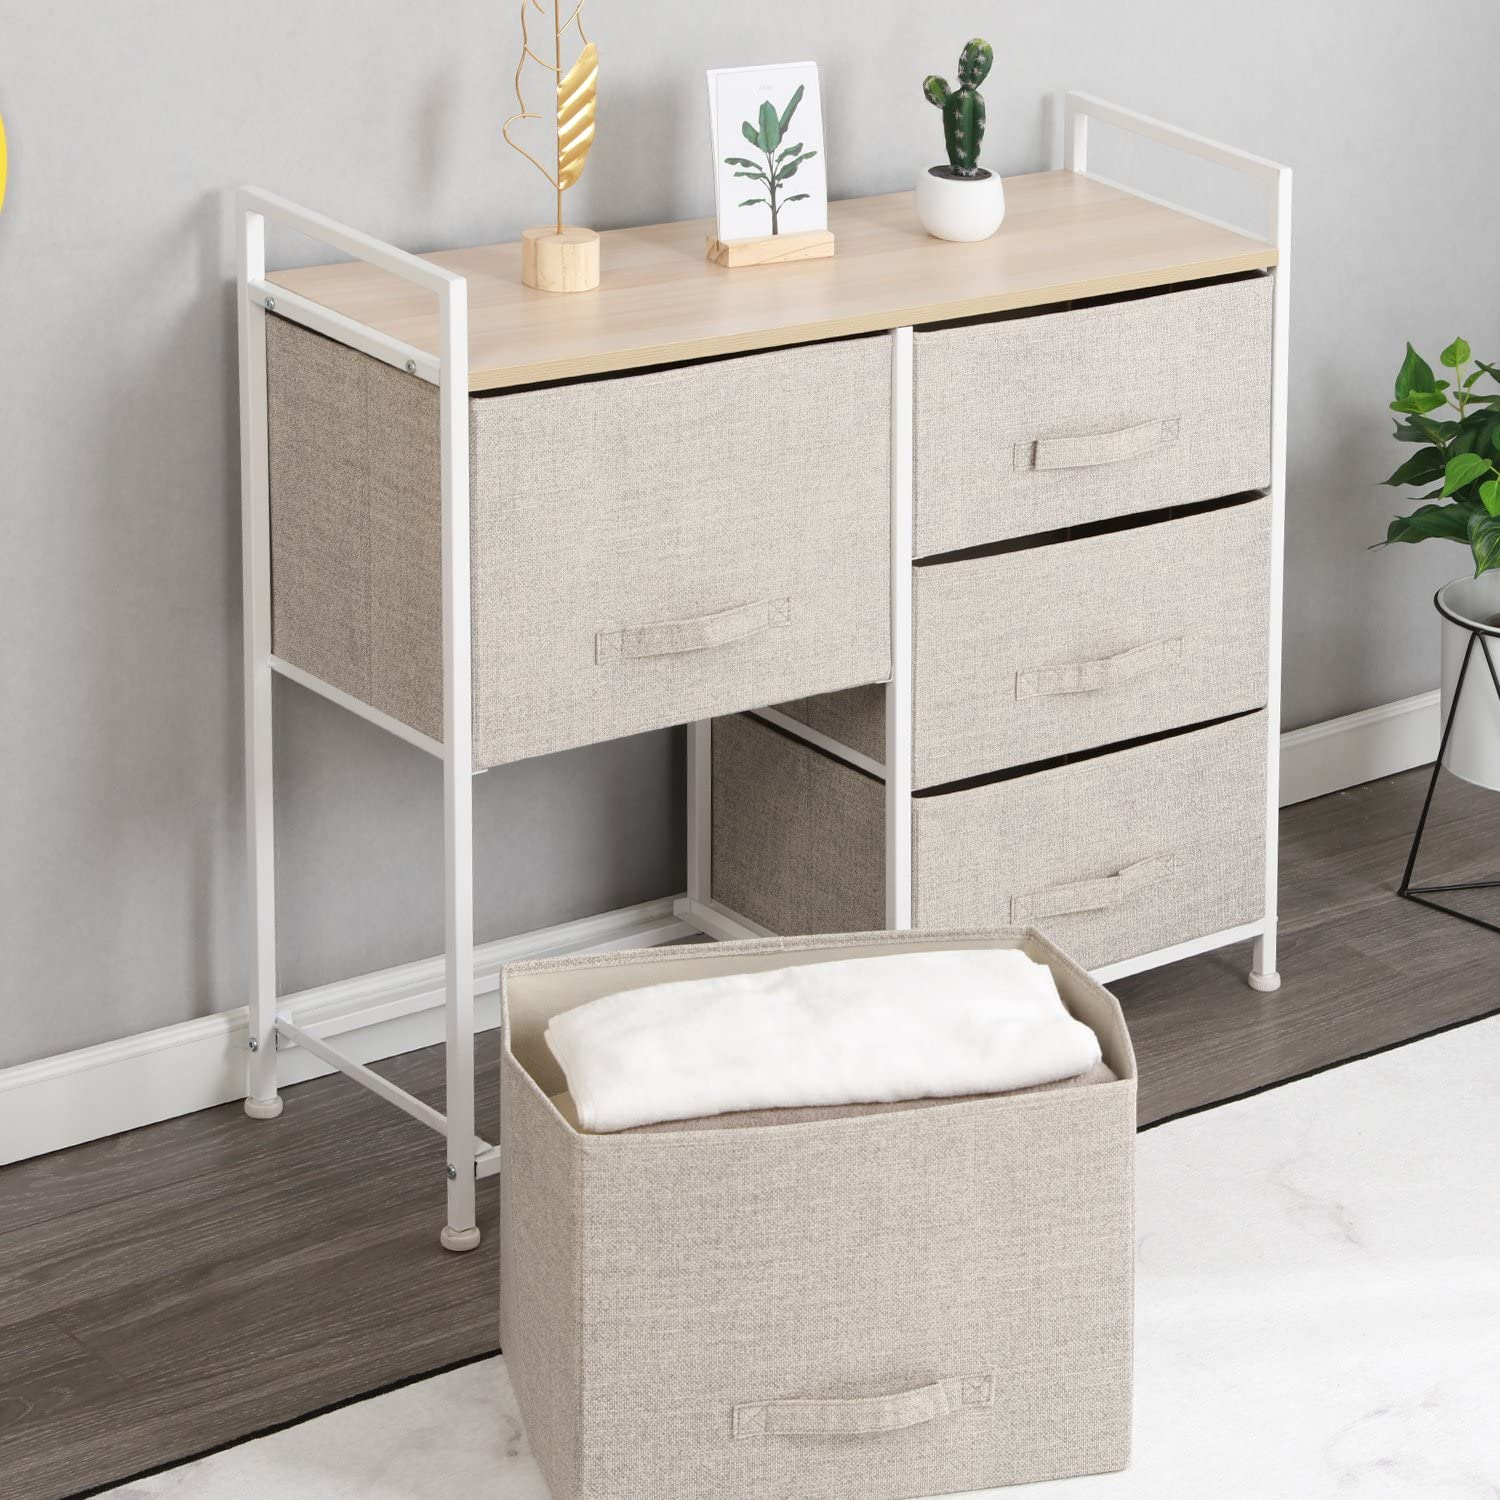 SH-WK-103N or Play Room with Fabric Bin Storage Unit Beige SogesHome 4-Drawer Storage Organizer Unit Easy Pull Fabric Bins Metal Frame,Storage Organizer Unit Easy Assembly for Bedroom